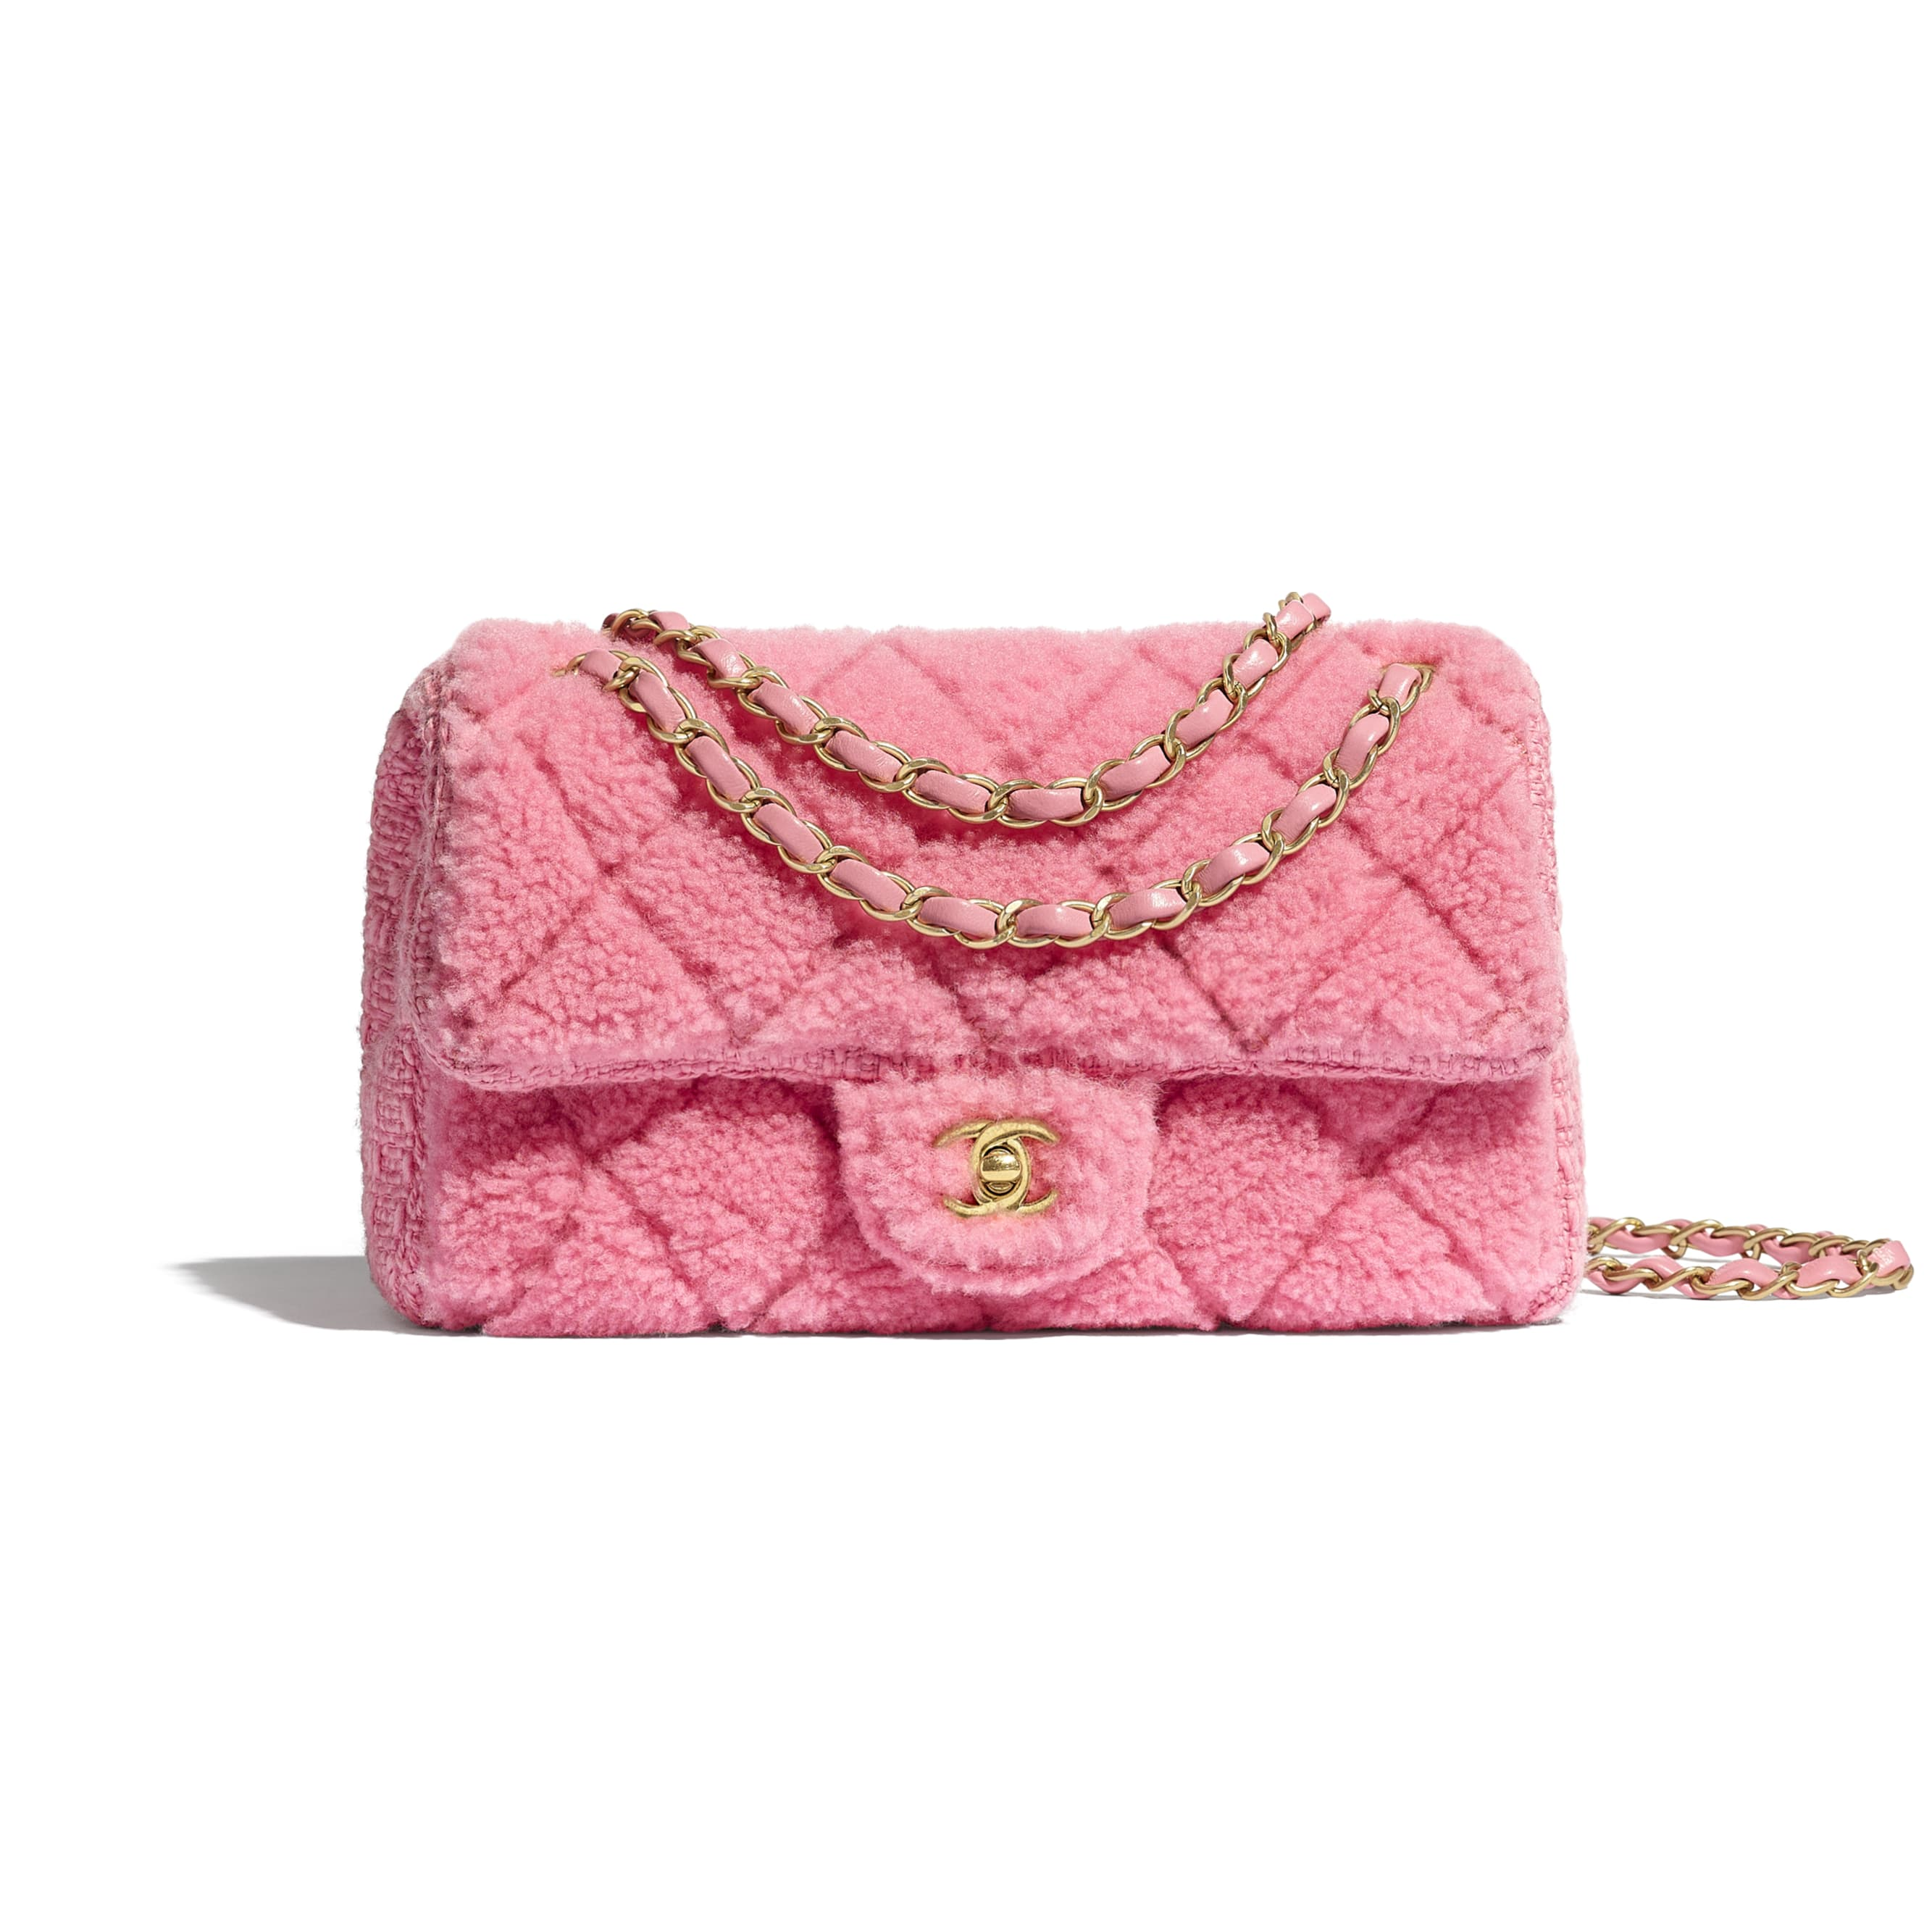 Flap Bag - Pink - Shearling Sheepskin, Tweed & Gold-Tone Metal - CHANEL - Default view - see standard sized version